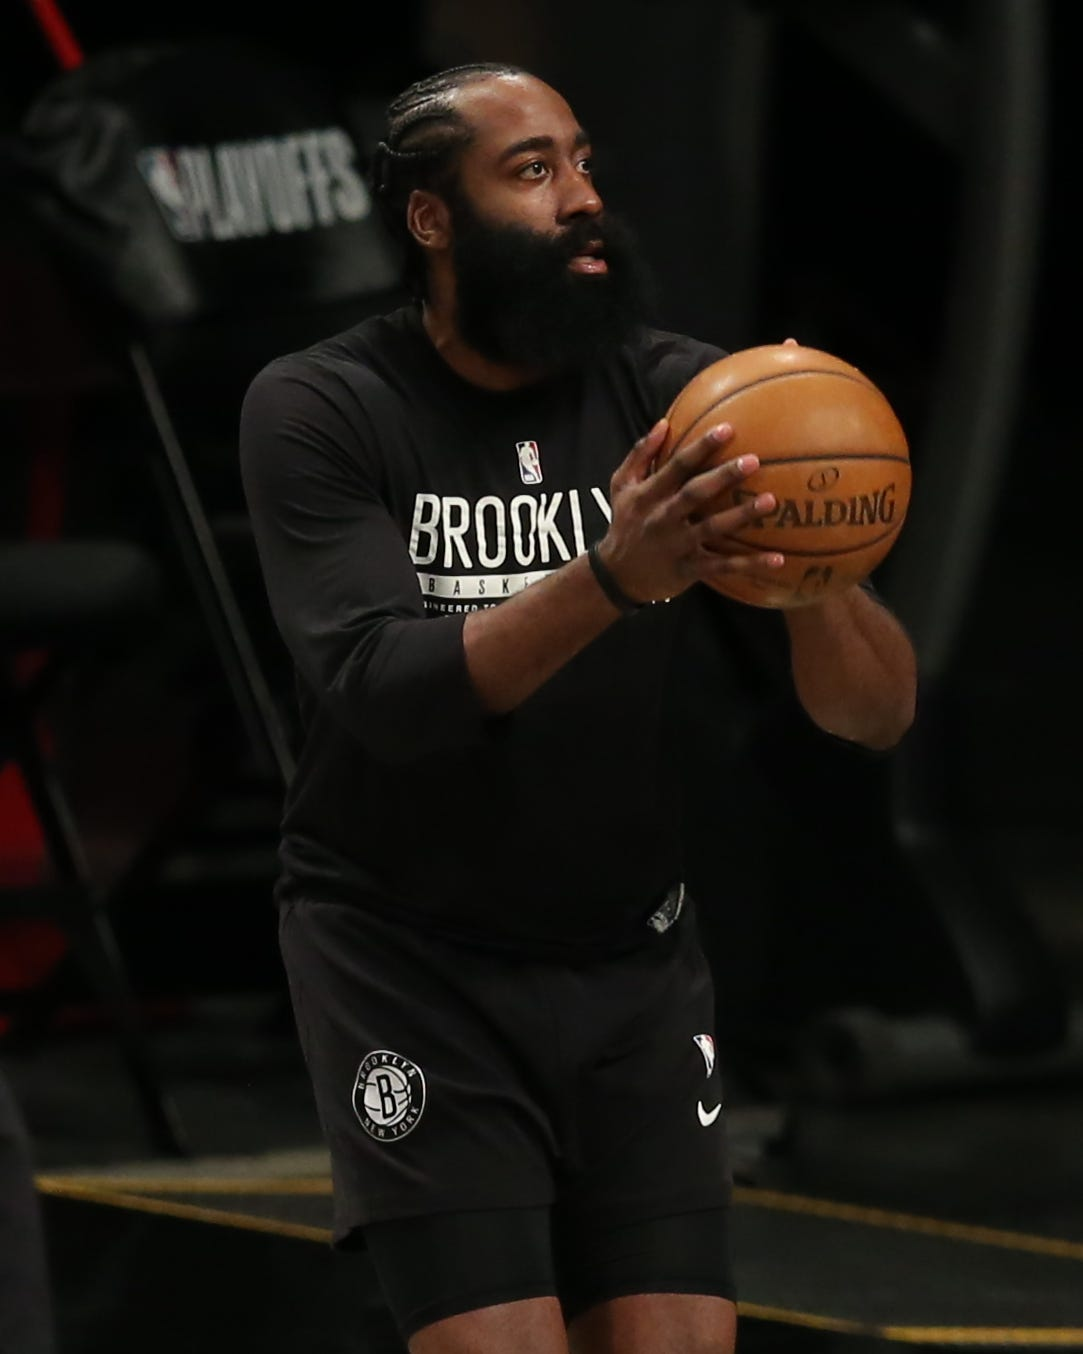 Brooklyn Nets star James Harden joins board of Saks' online spinoff